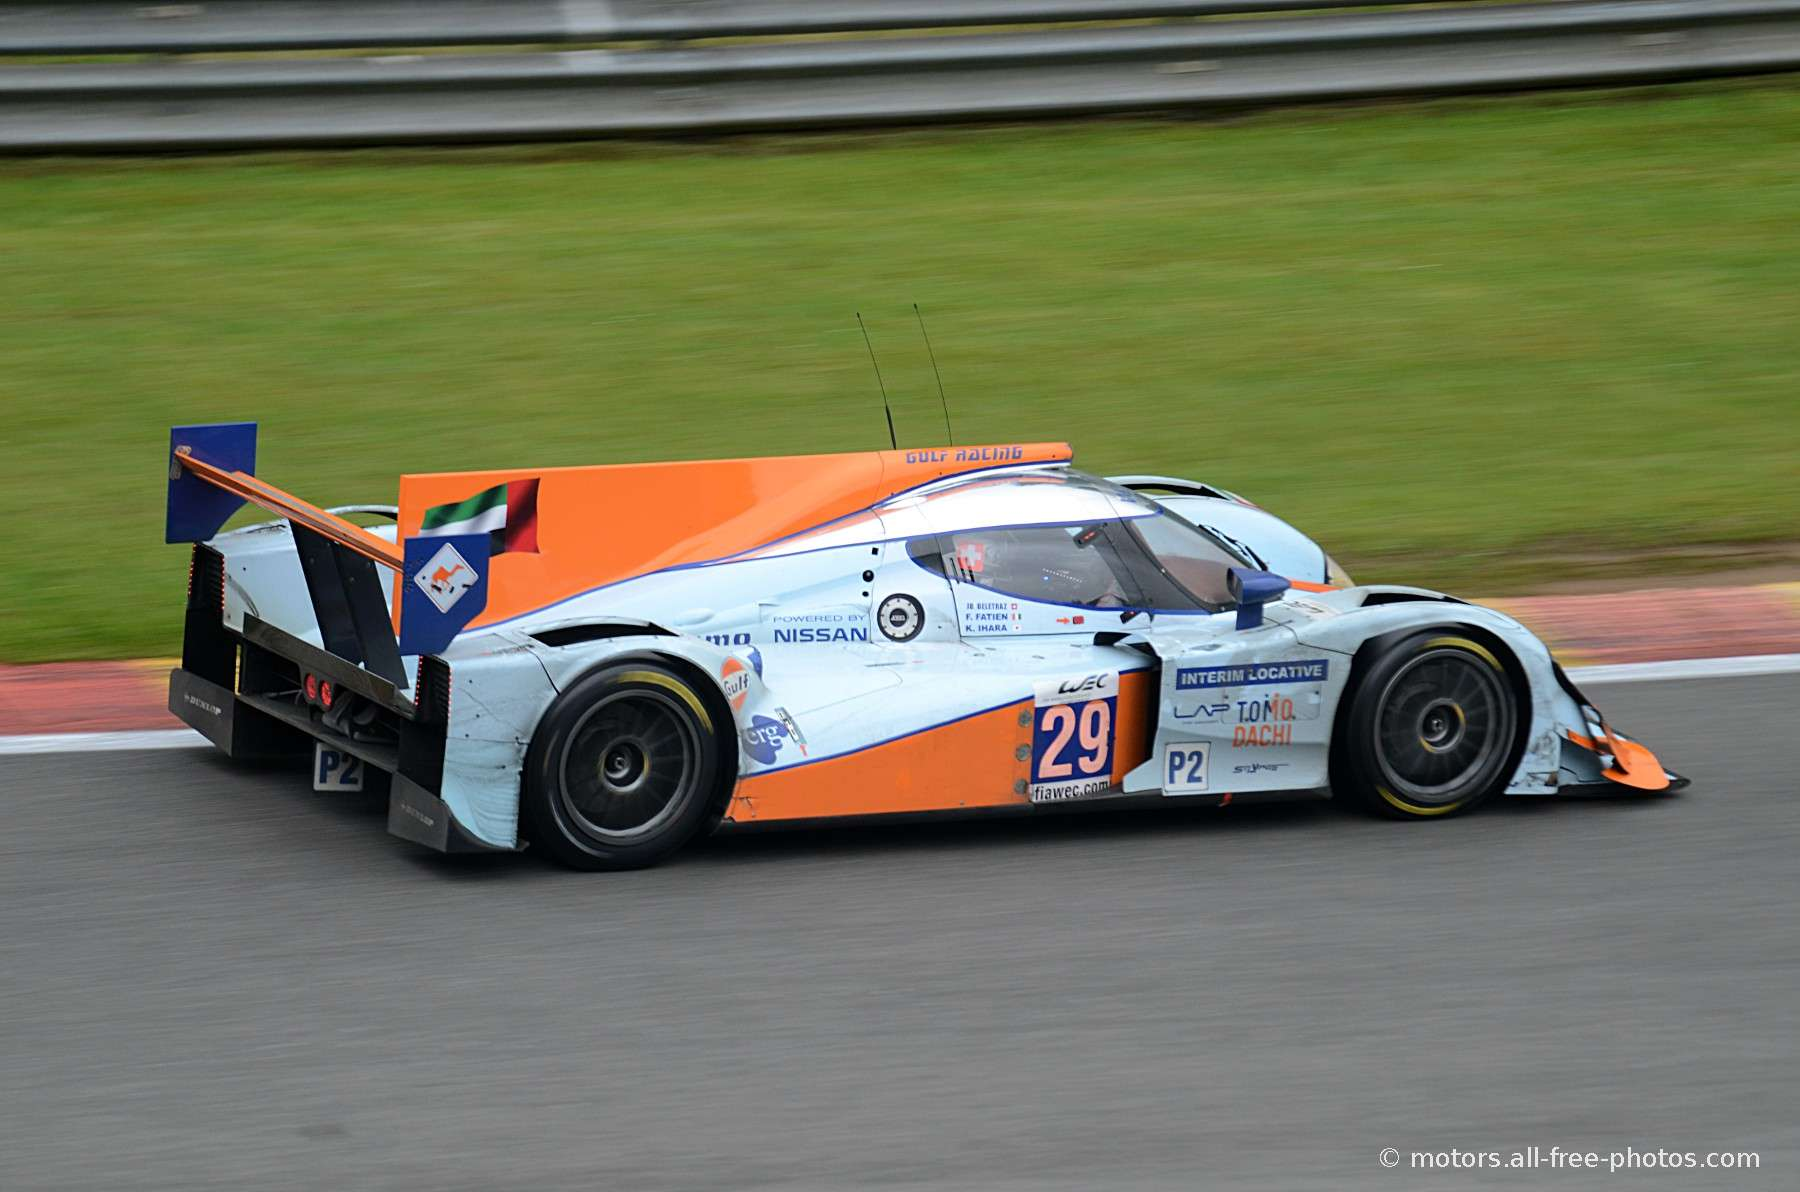 Lola B12/80-Nissan - Team Gulf Racing